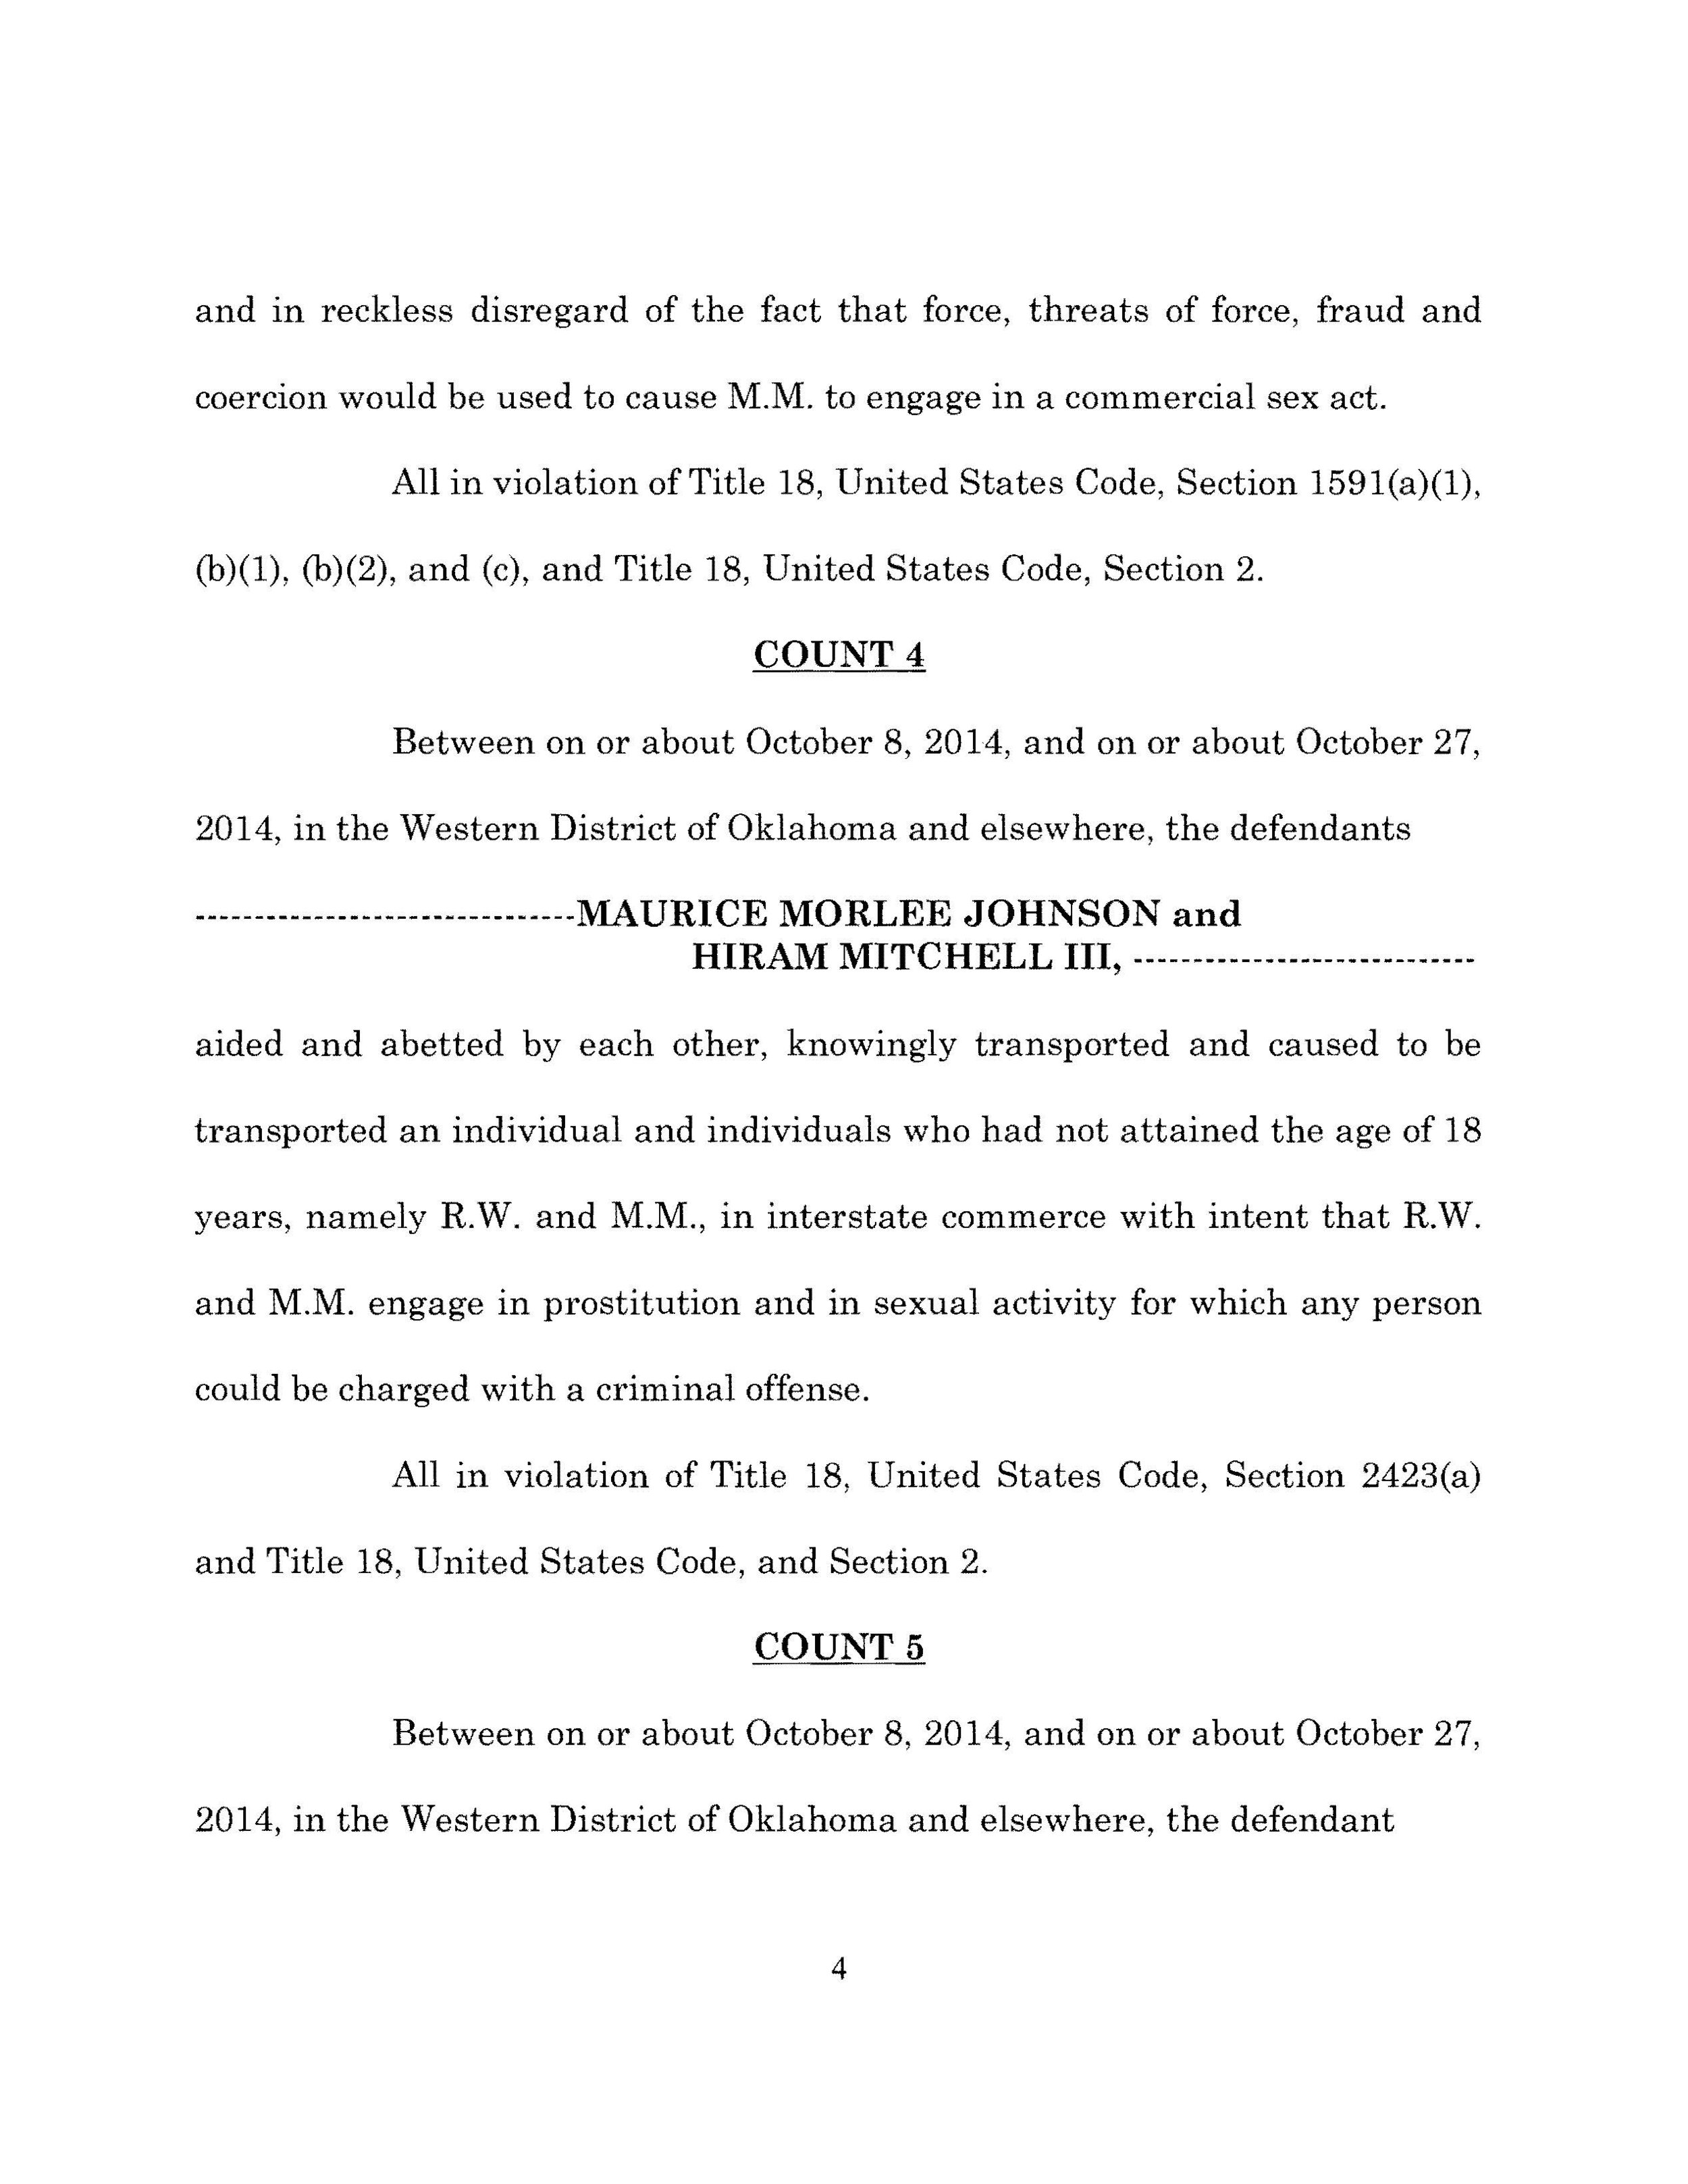 Maurice Johnson Indictment_Page_04_Image_0001.jpg